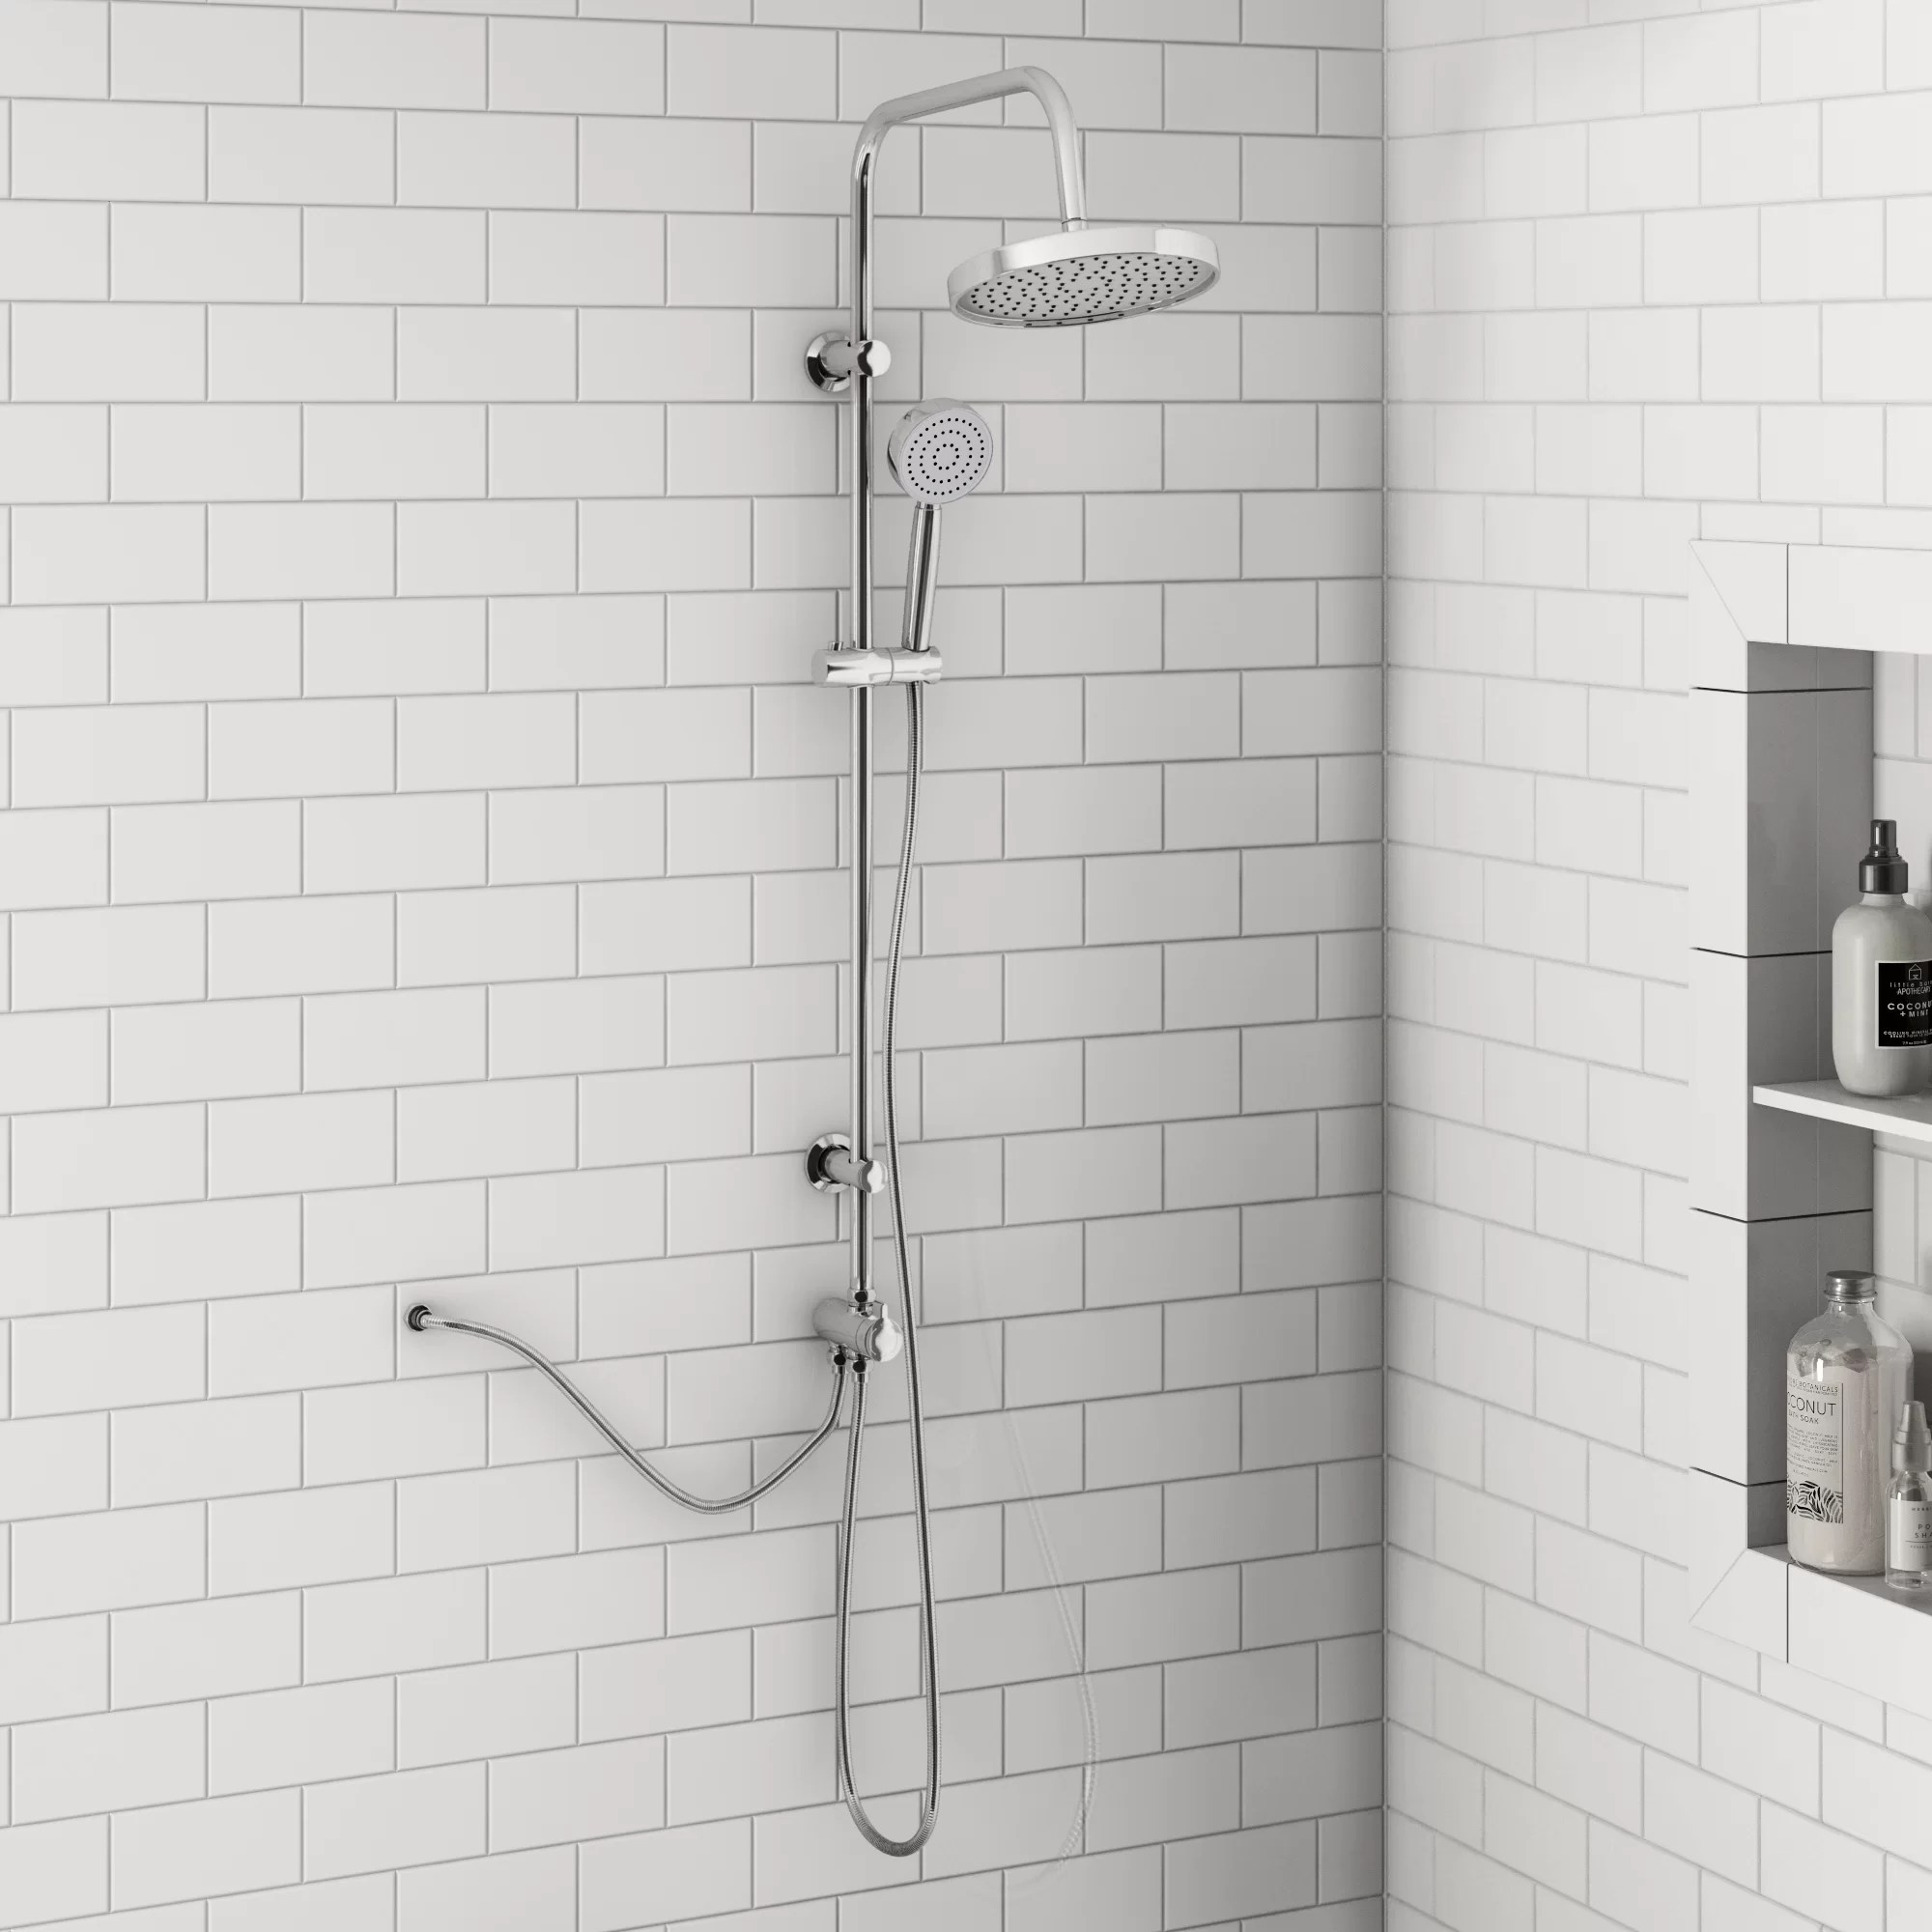 Areli Mixer Shower With Dual Shower Head